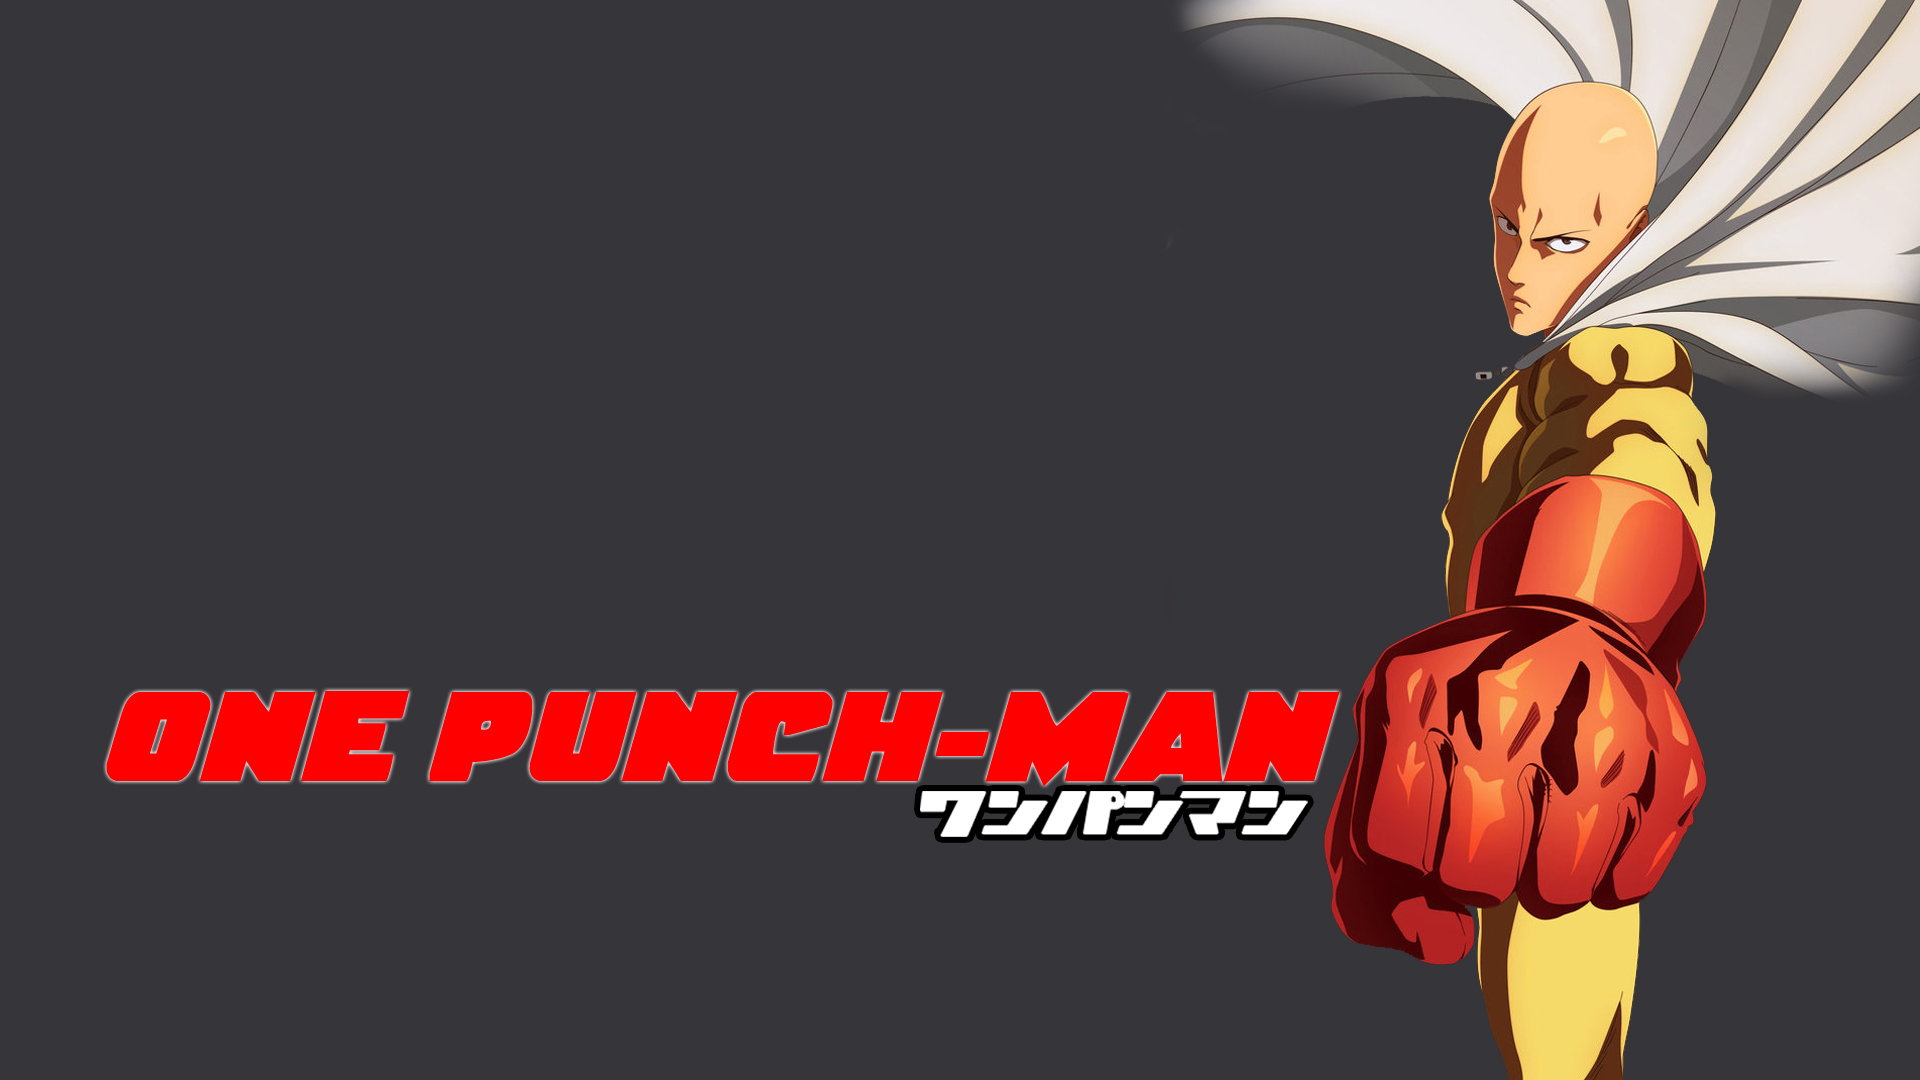 One Punch Man 4k Wallpaper Posted By Michelle Simpson